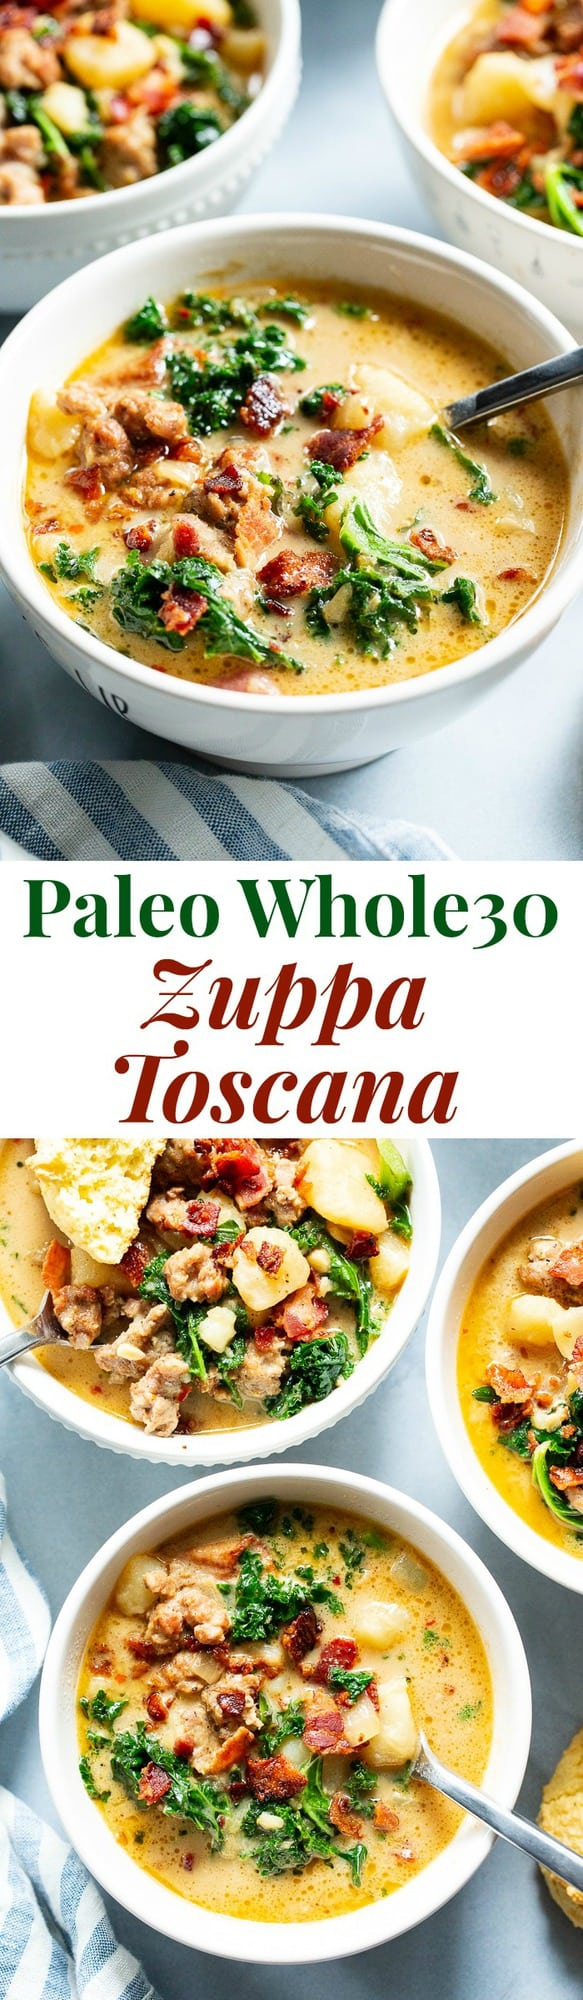 This healthier twist on classic Zuppa Toscana is insanely delicious, creamy, savory and so cozy during the cold months!  It's packed with all the goodies, is totally dairy-free, paleo, and Whole30 compliant, and even has a low carb keto option.